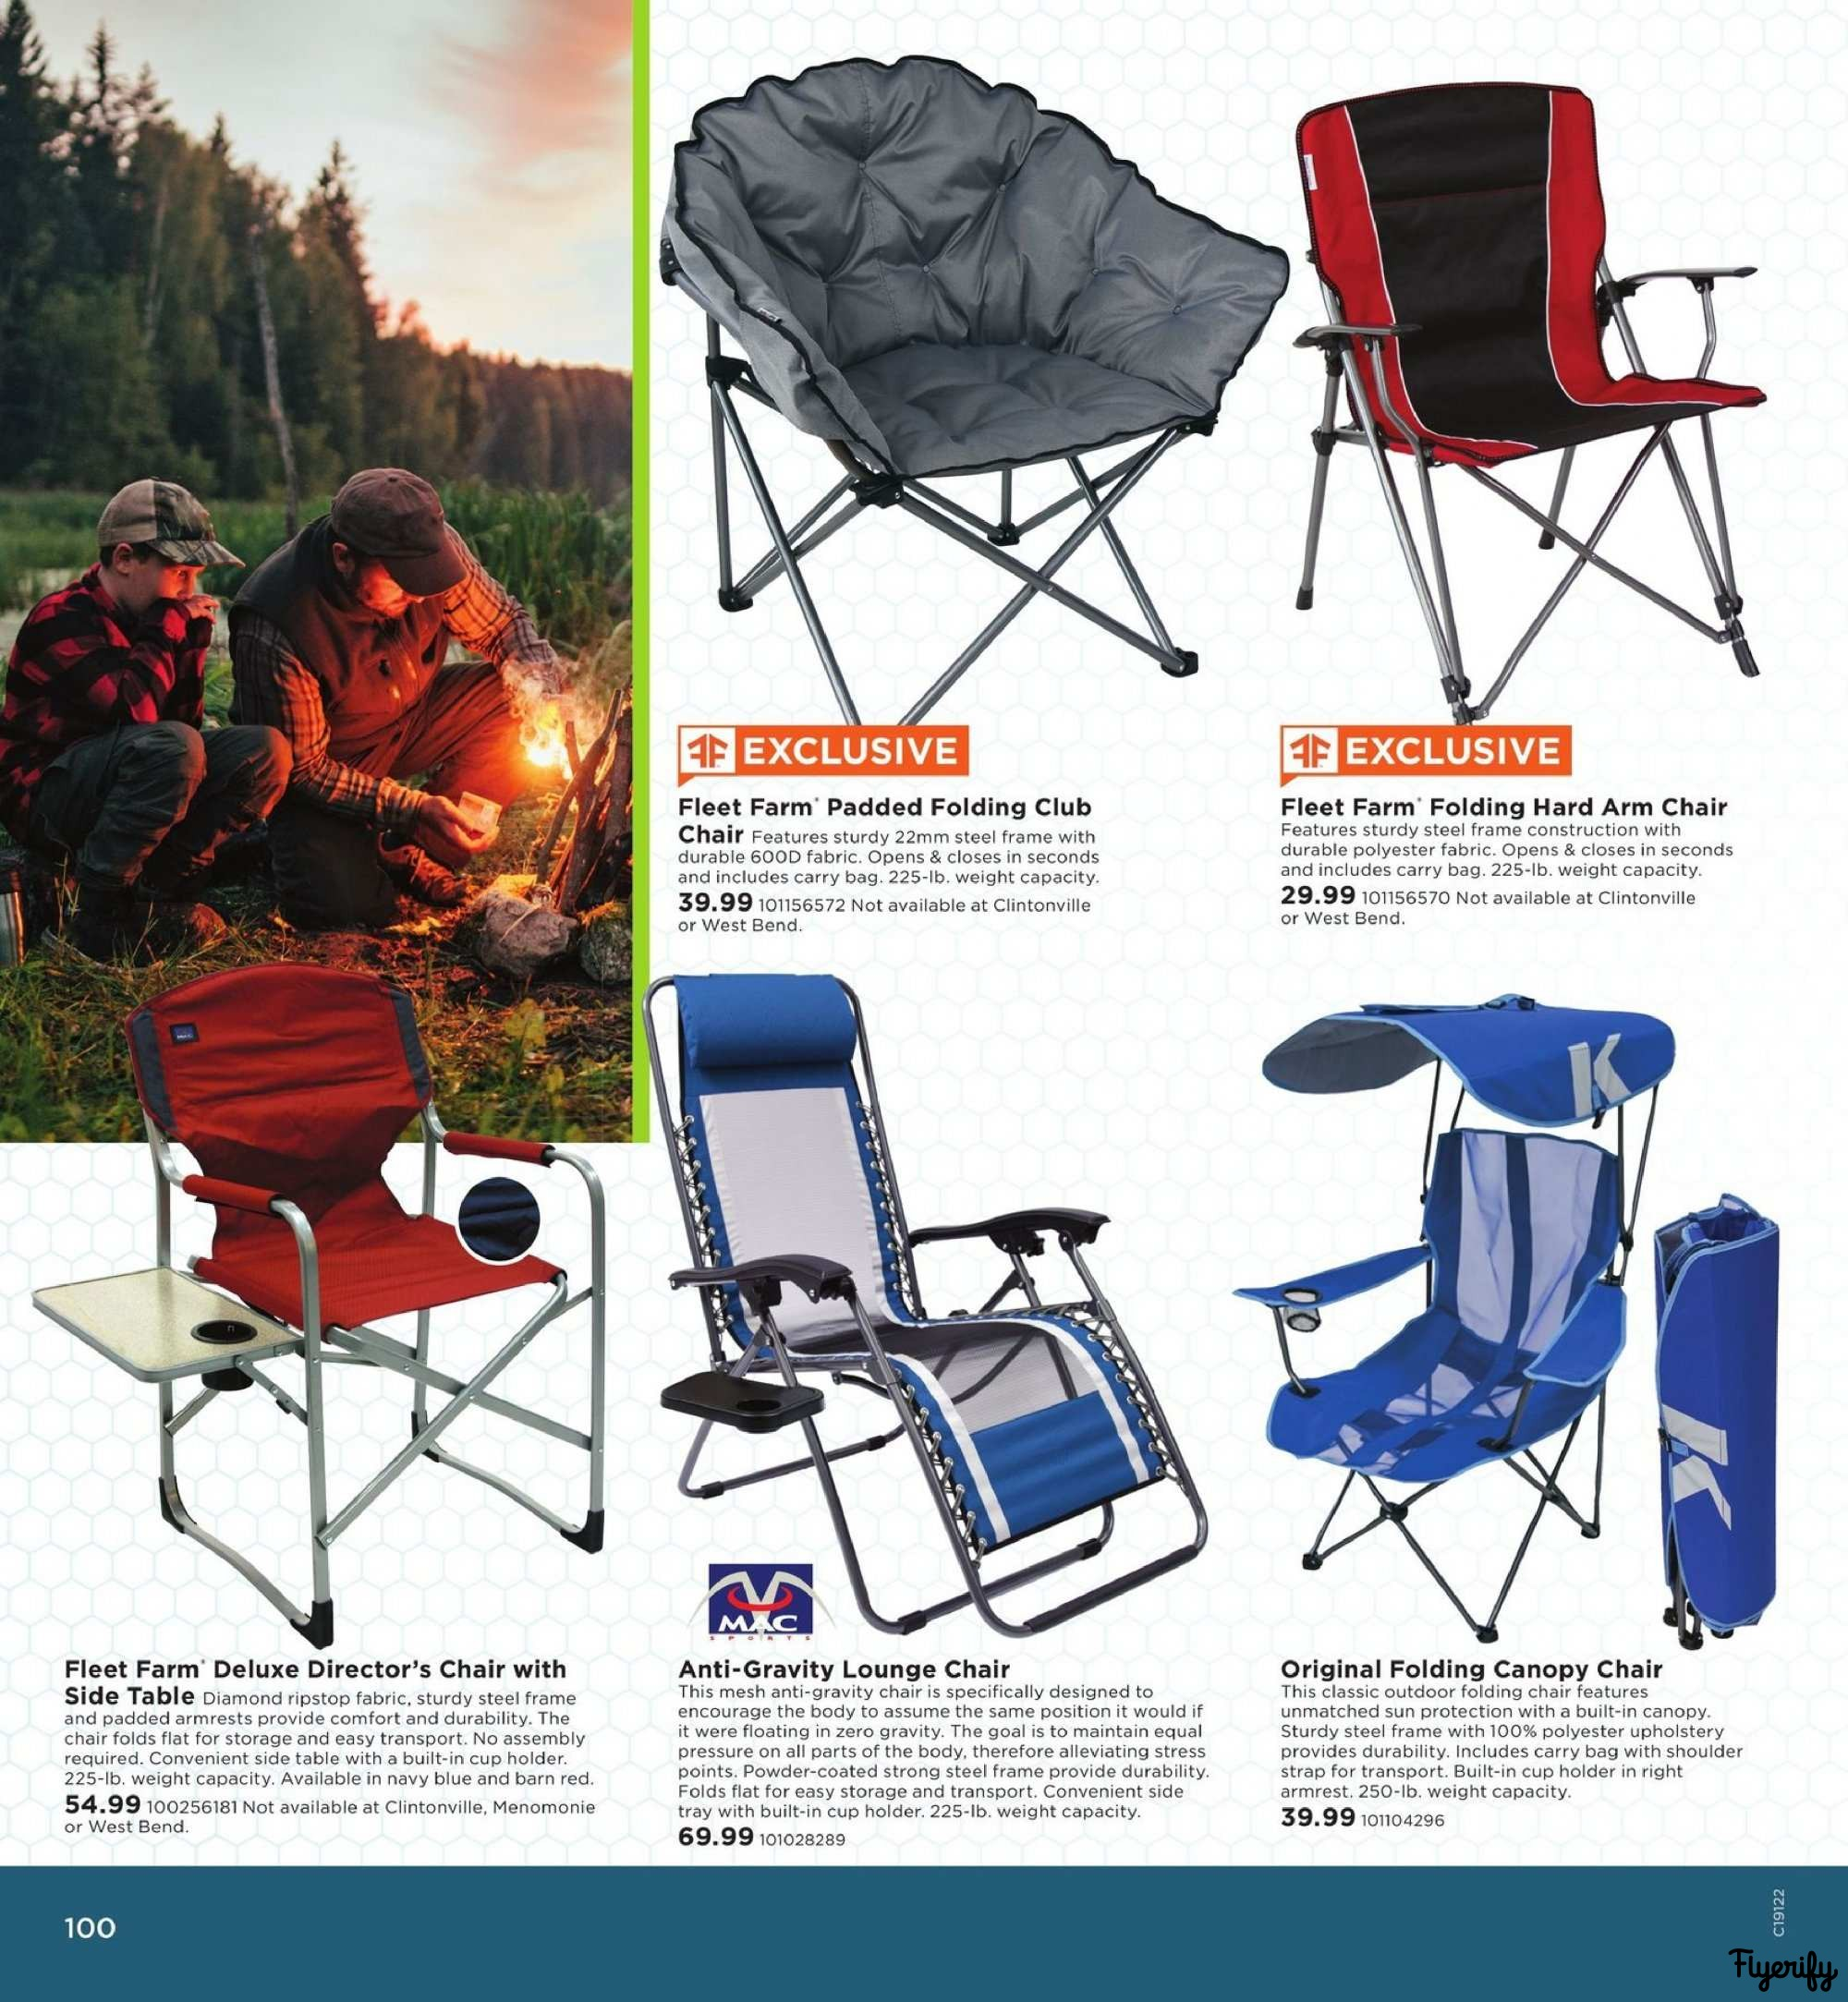 Phenomenal Fleet Farm Weekly Ad Flyer March 15 To July 5 Canada Creativecarmelina Interior Chair Design Creativecarmelinacom